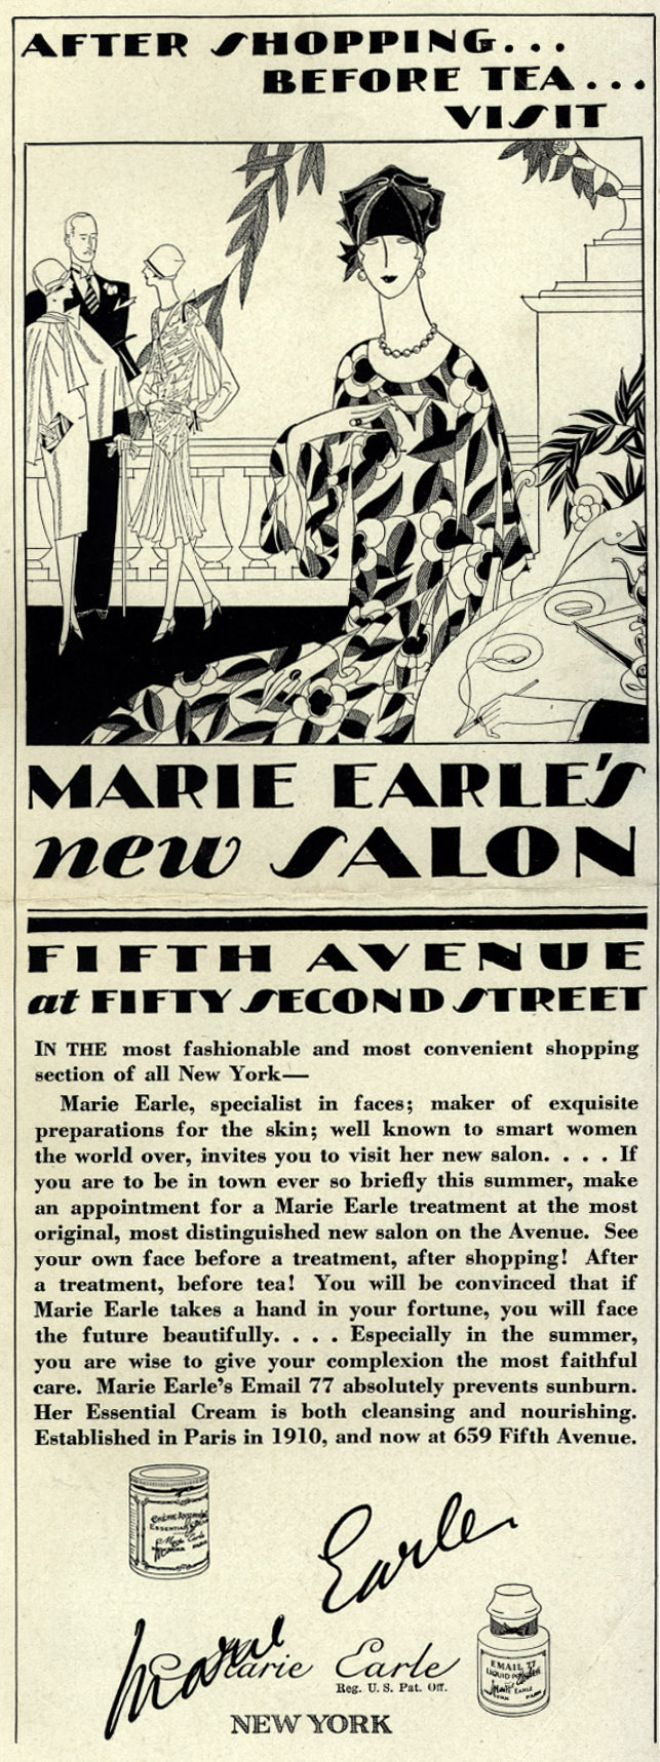 Beauty salon advertising of 1926. 18,000 beauty parlours opened just in America by the end of the 1920s.